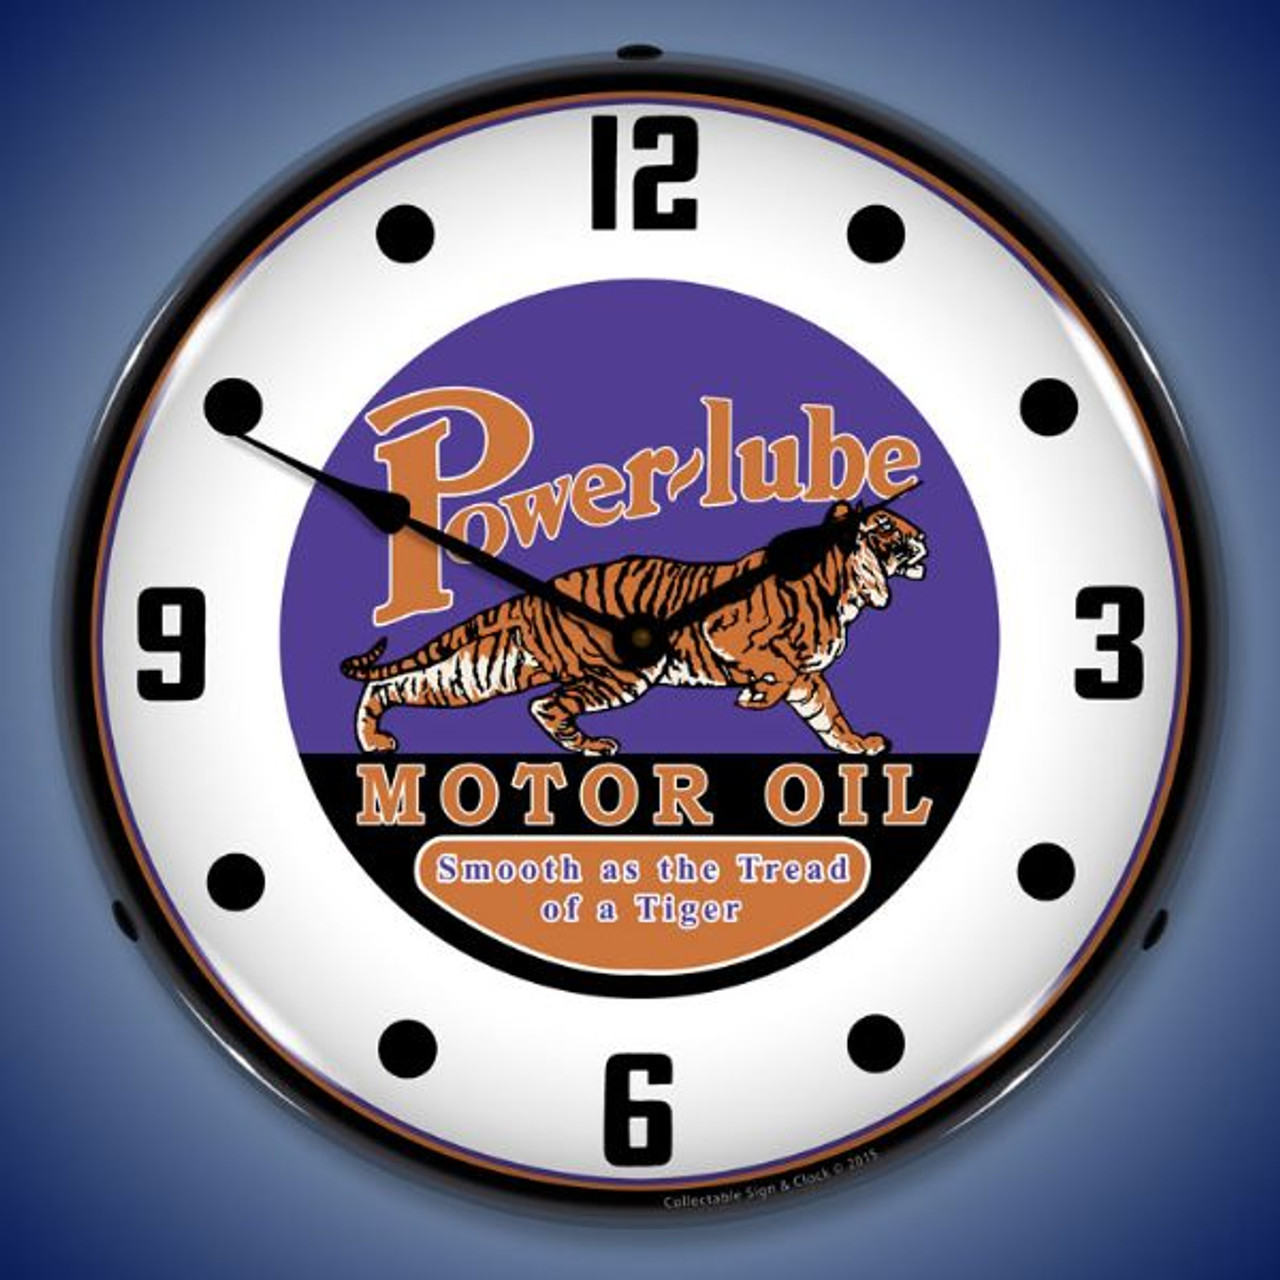 Powerlube Motor Oil Lighted Wall Clock 14 x 14 Inches